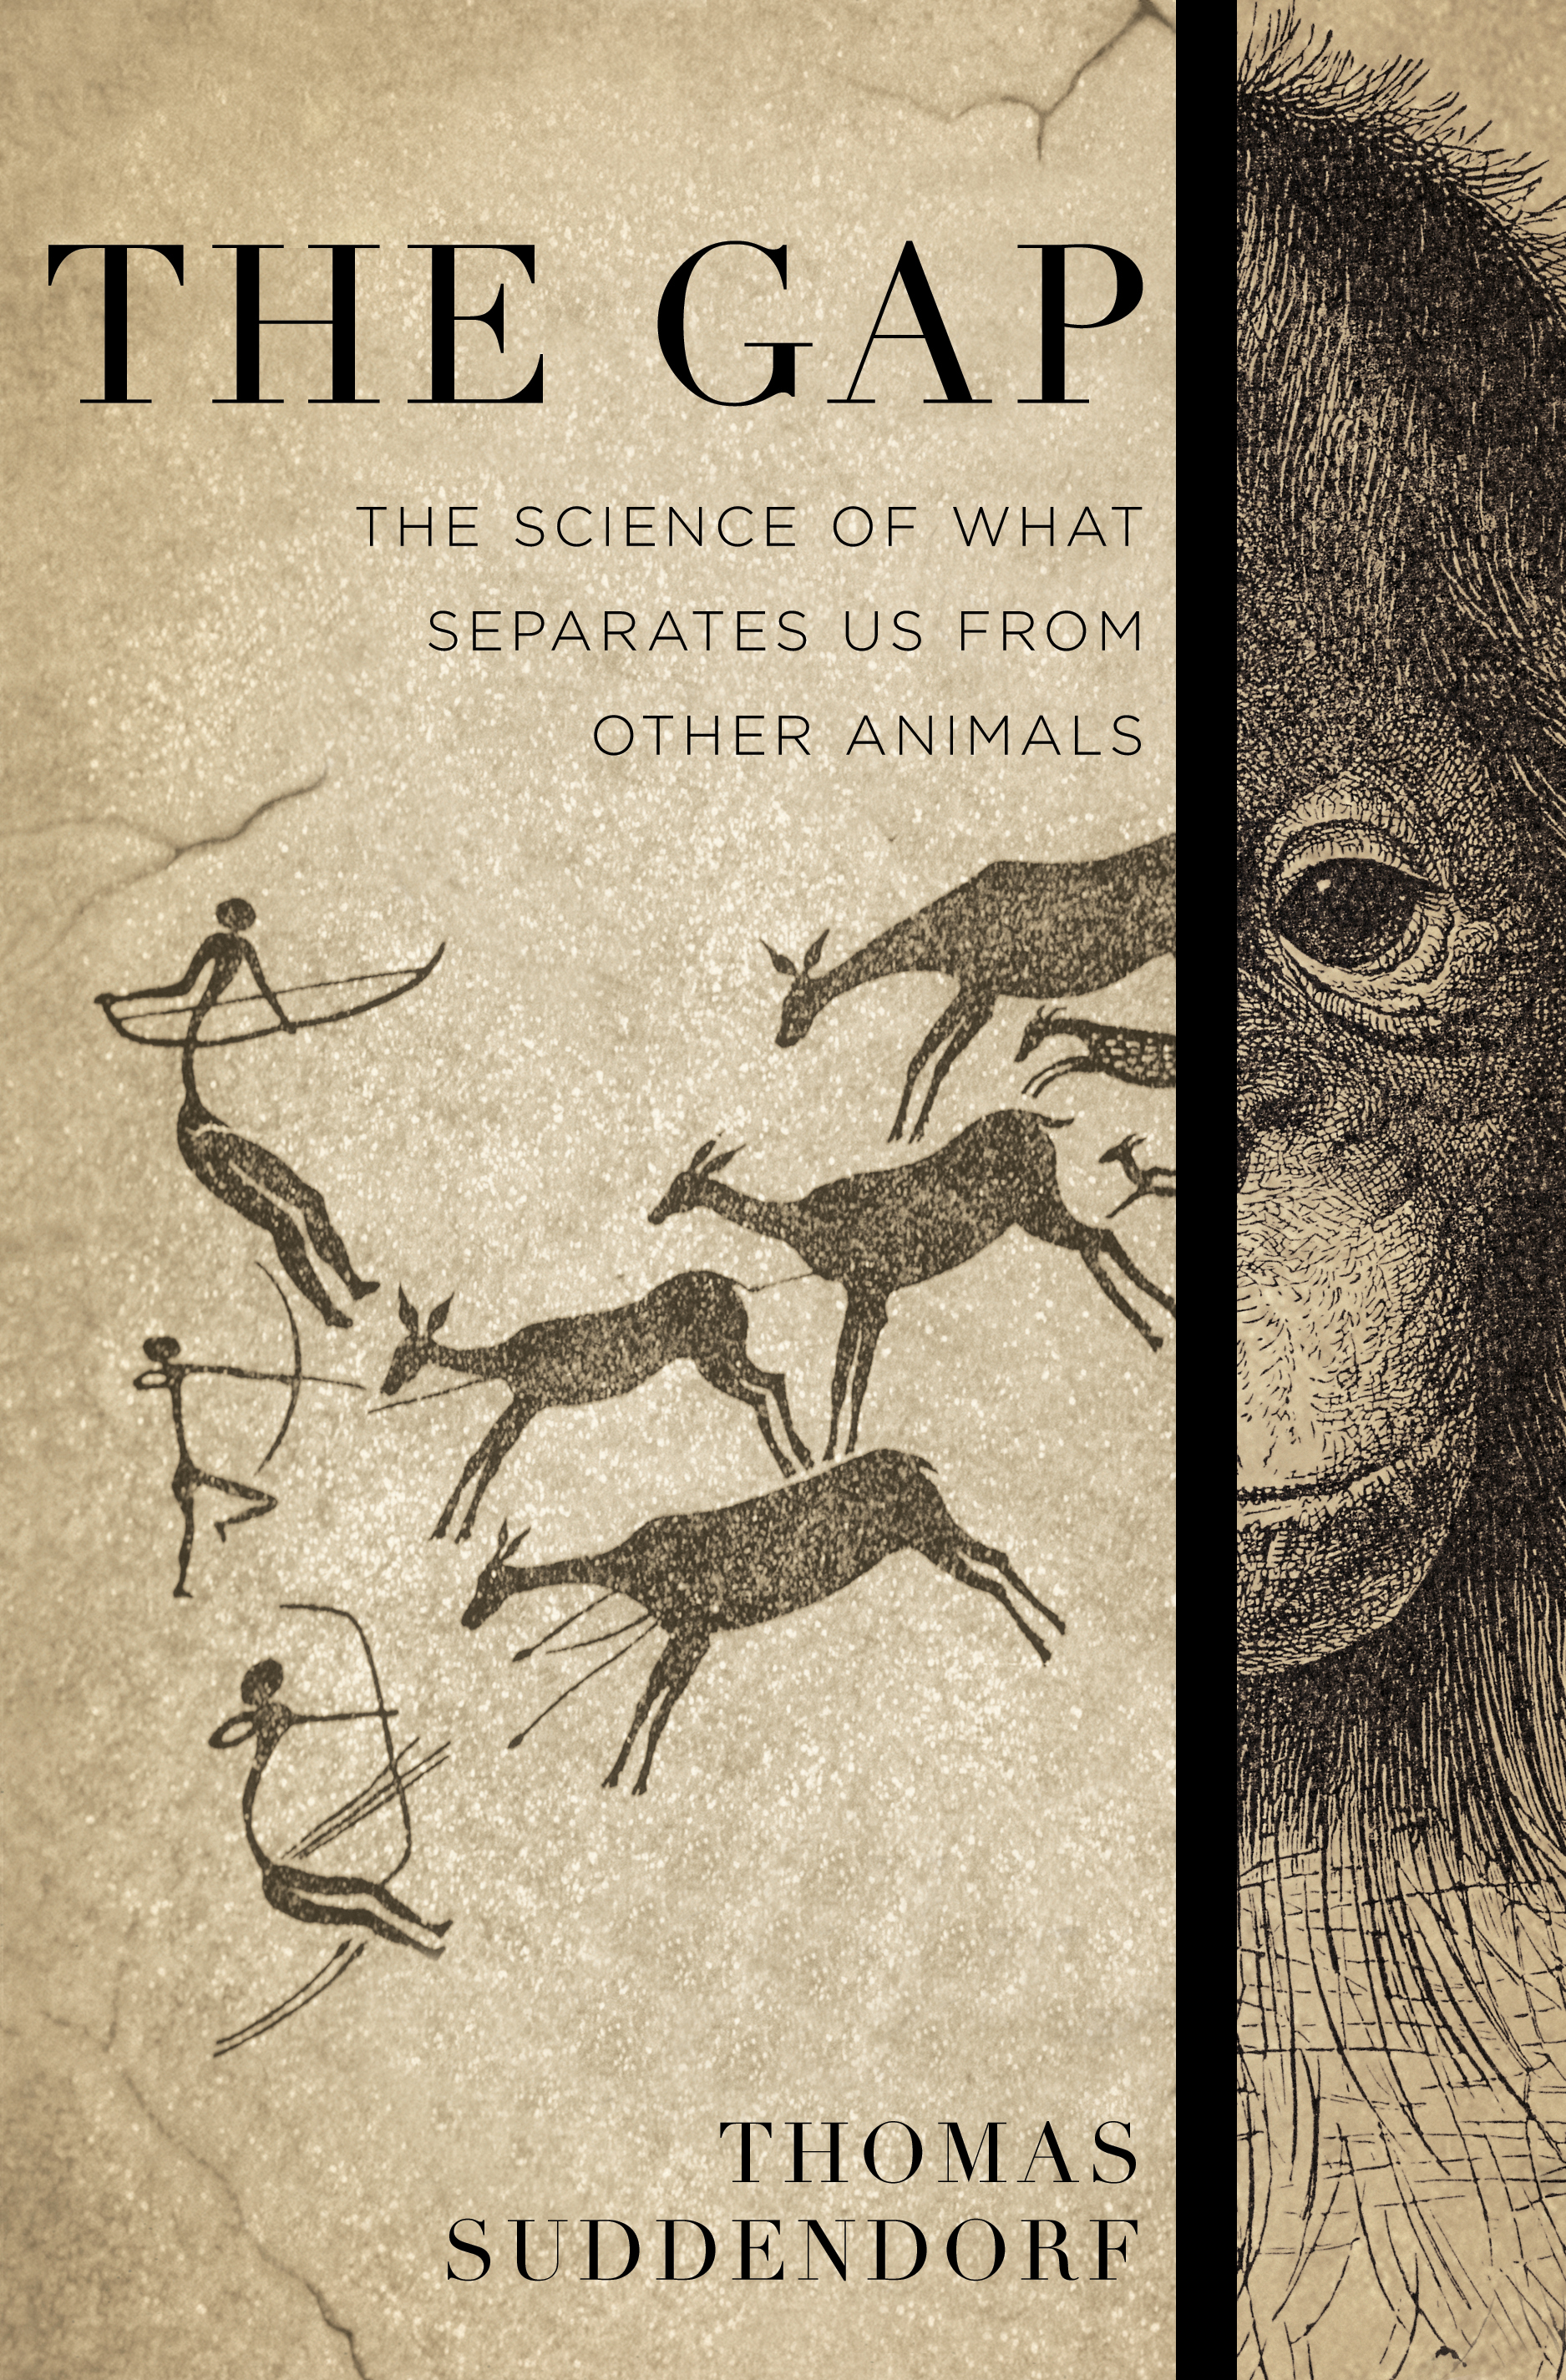 The Gap The Science of What Separates Us from Other Animals